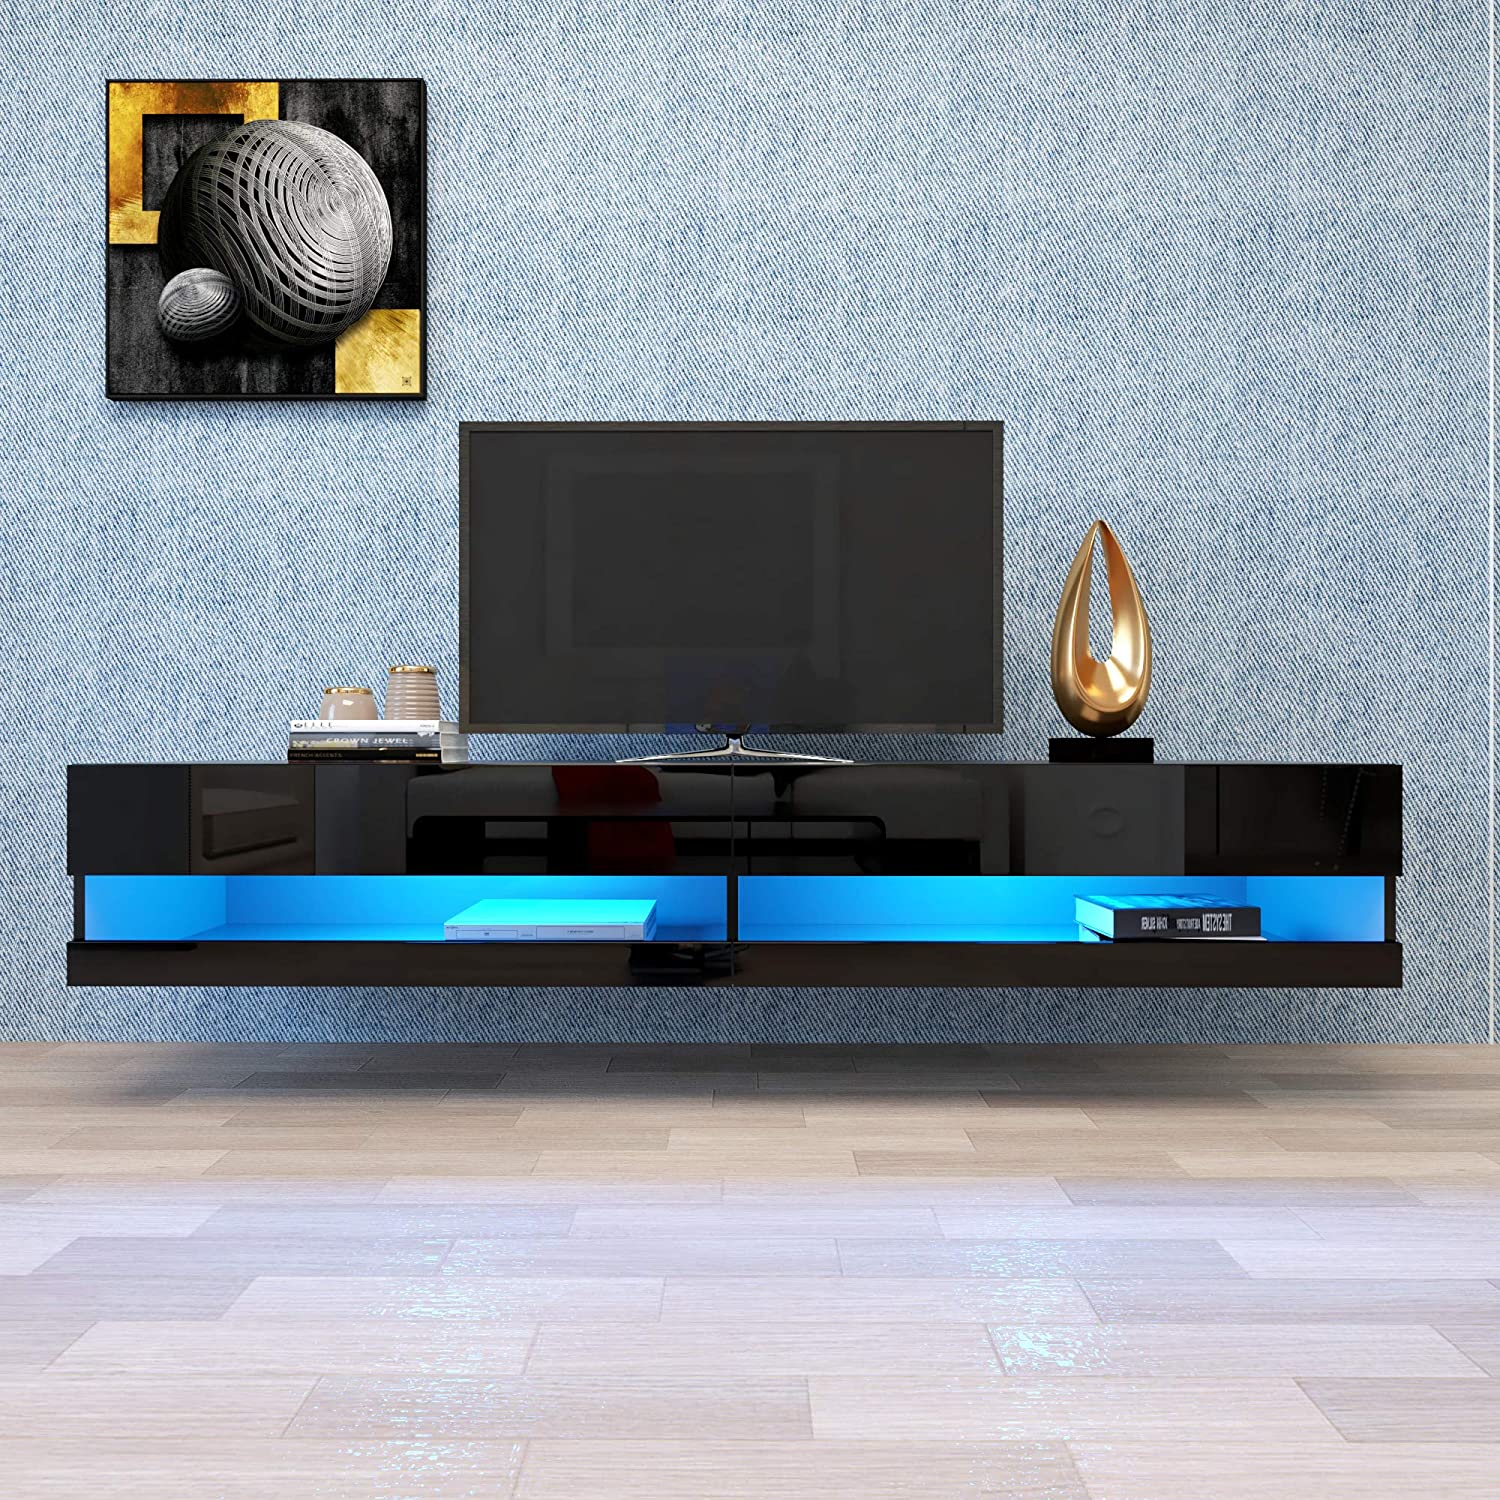 Floating TV Stand LED Effects Wall Mounted Entertainment Center Living Room Console Table Large Storage Cabinet (Black A)